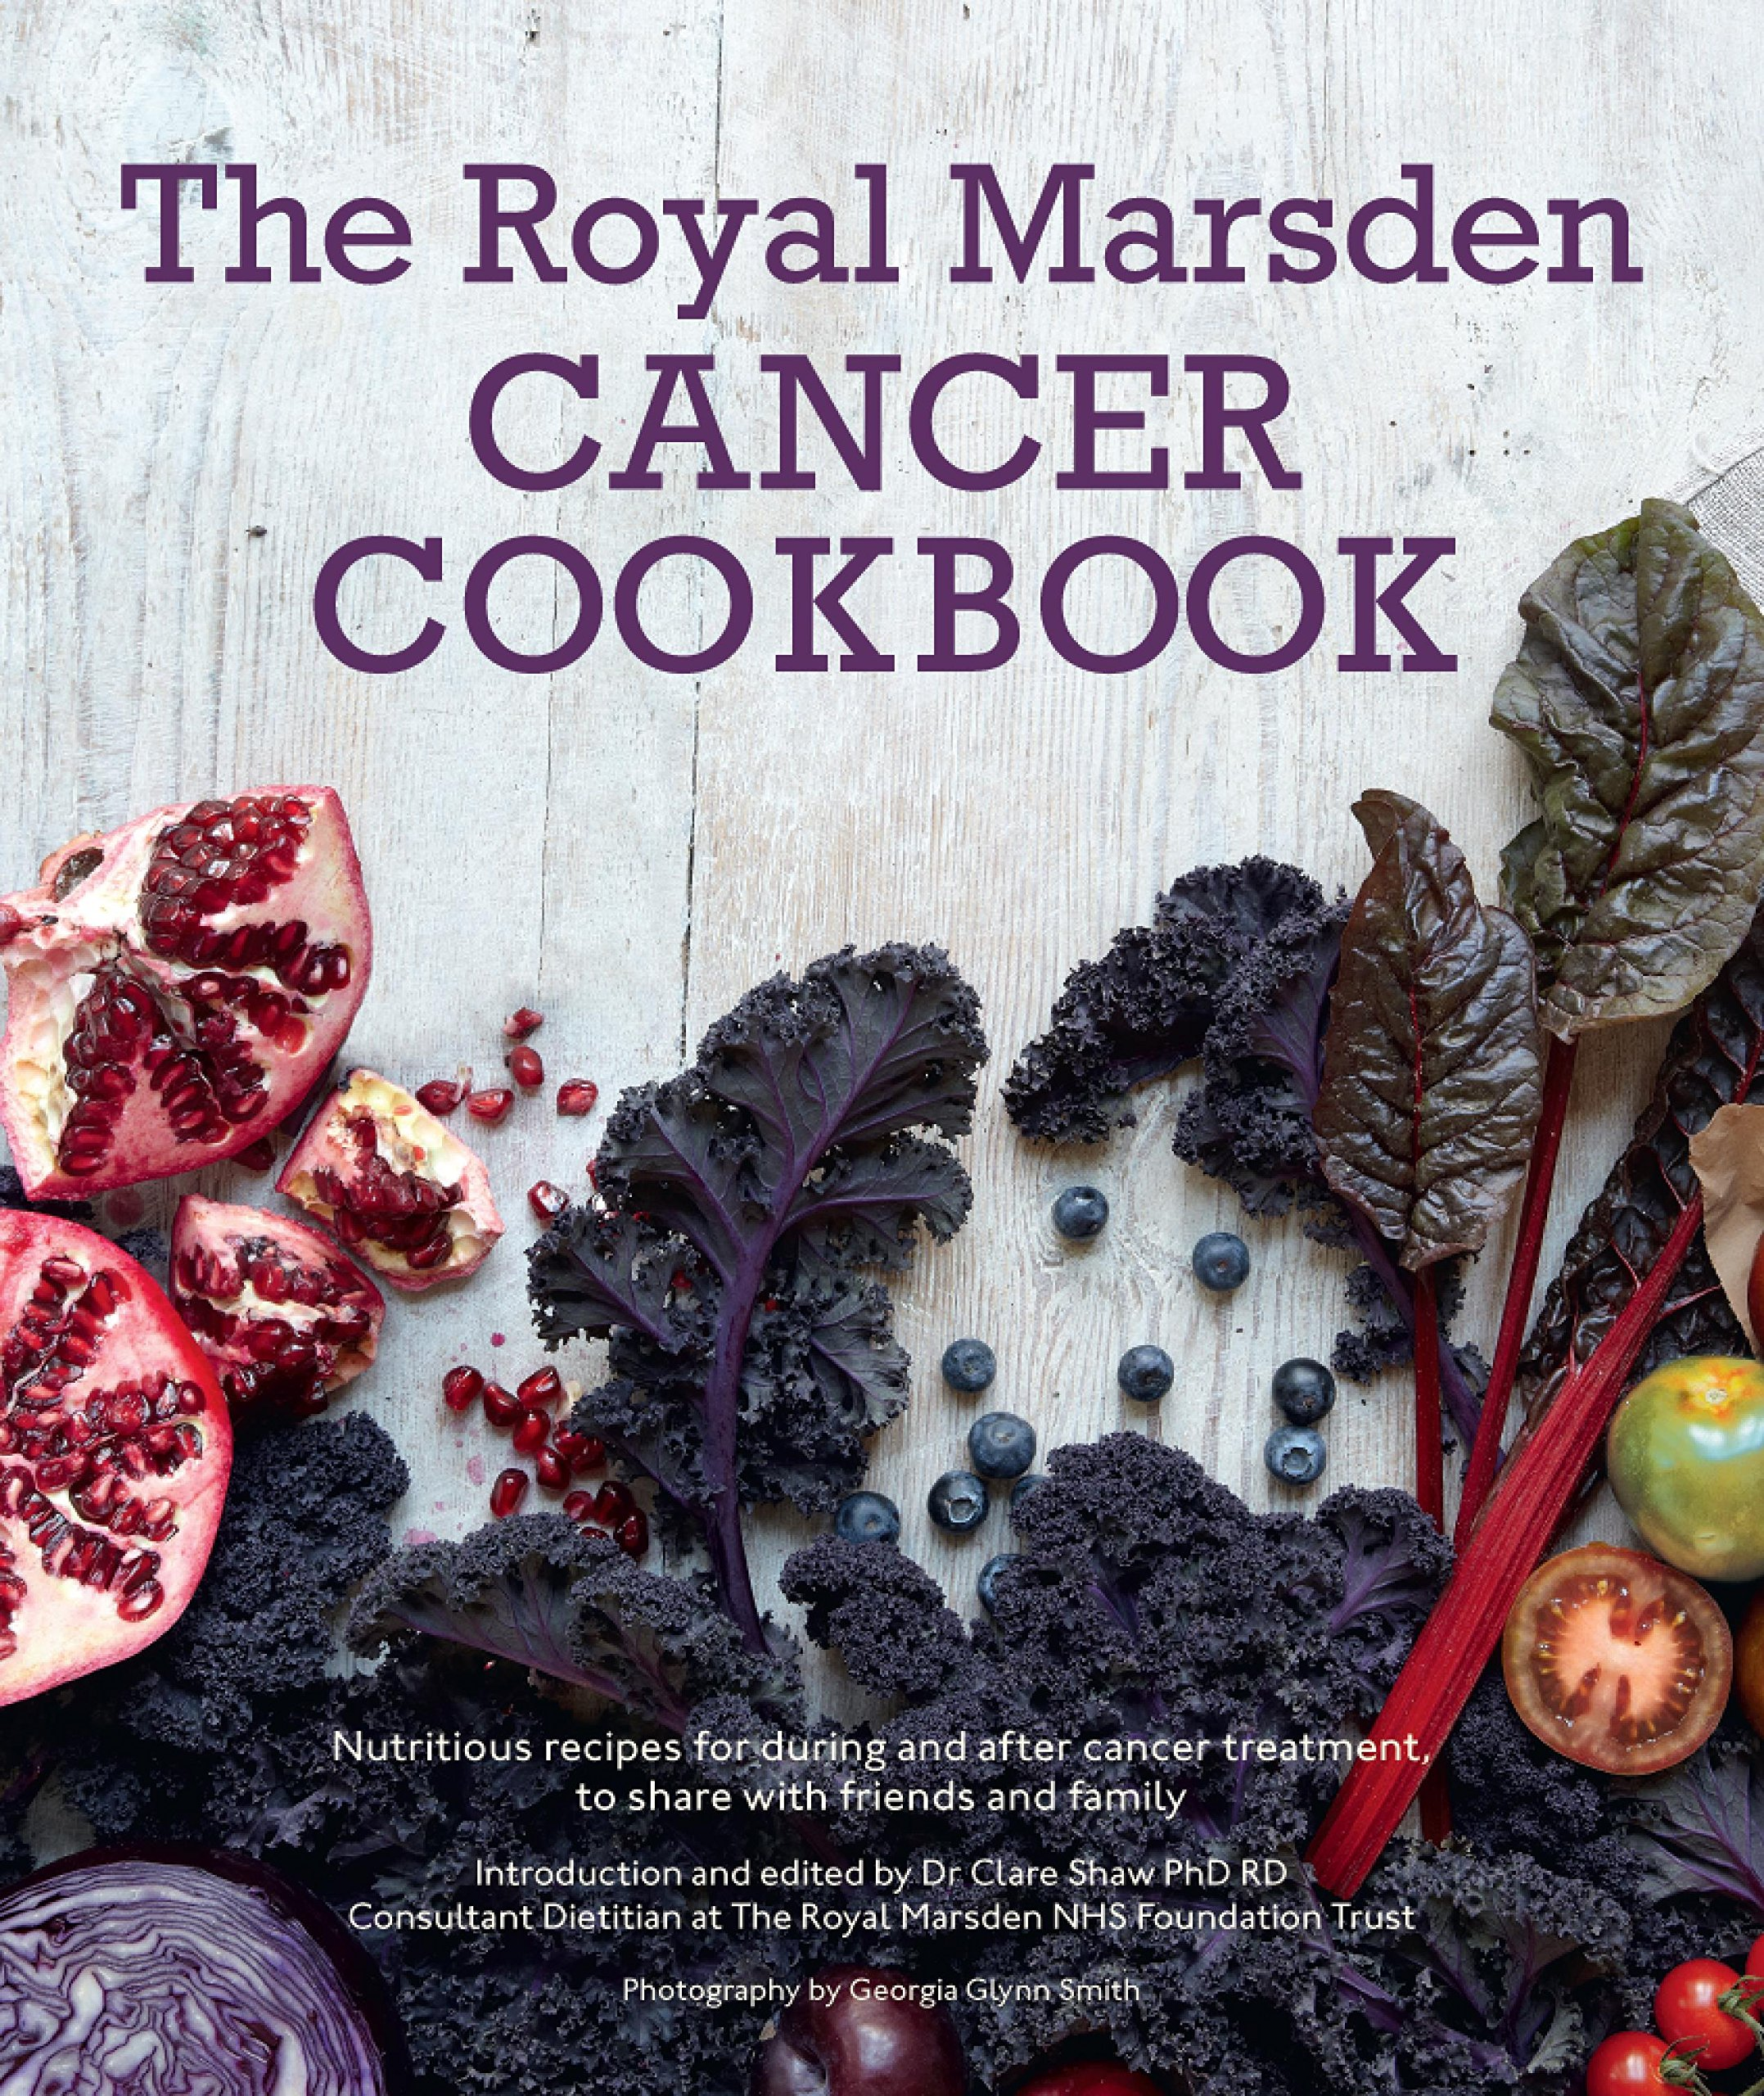 Royal marsden cancer cookbook nutritious recipes for during and royal marsden cancer cookbook nutritious recipes for during and after cancer treatment to share with friends and family amazon clare shaw phd rd forumfinder Choice Image